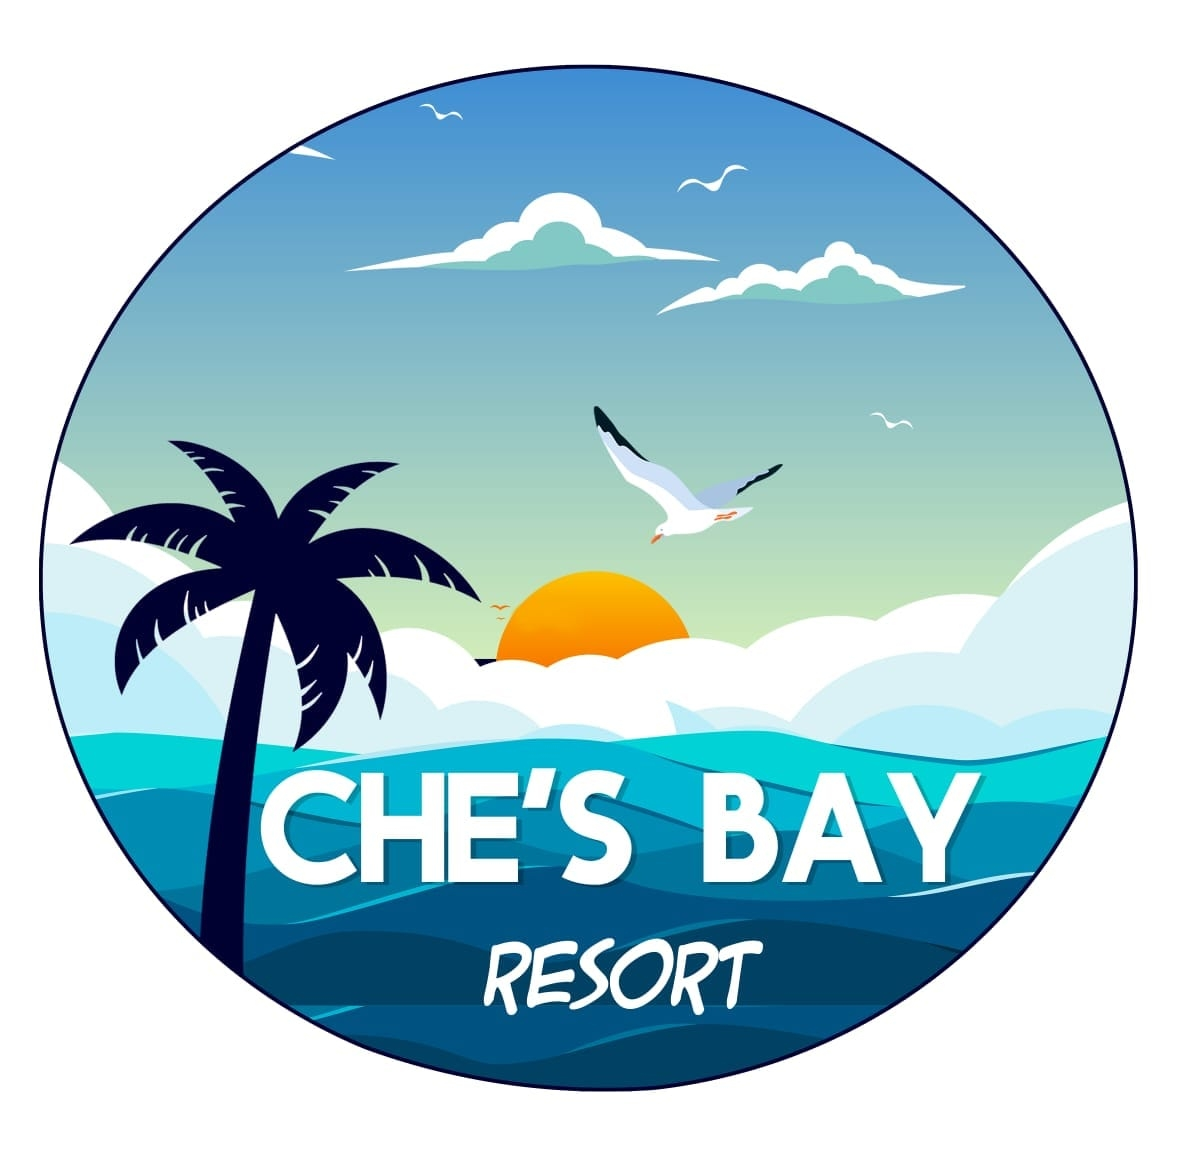 Ches Bay resort